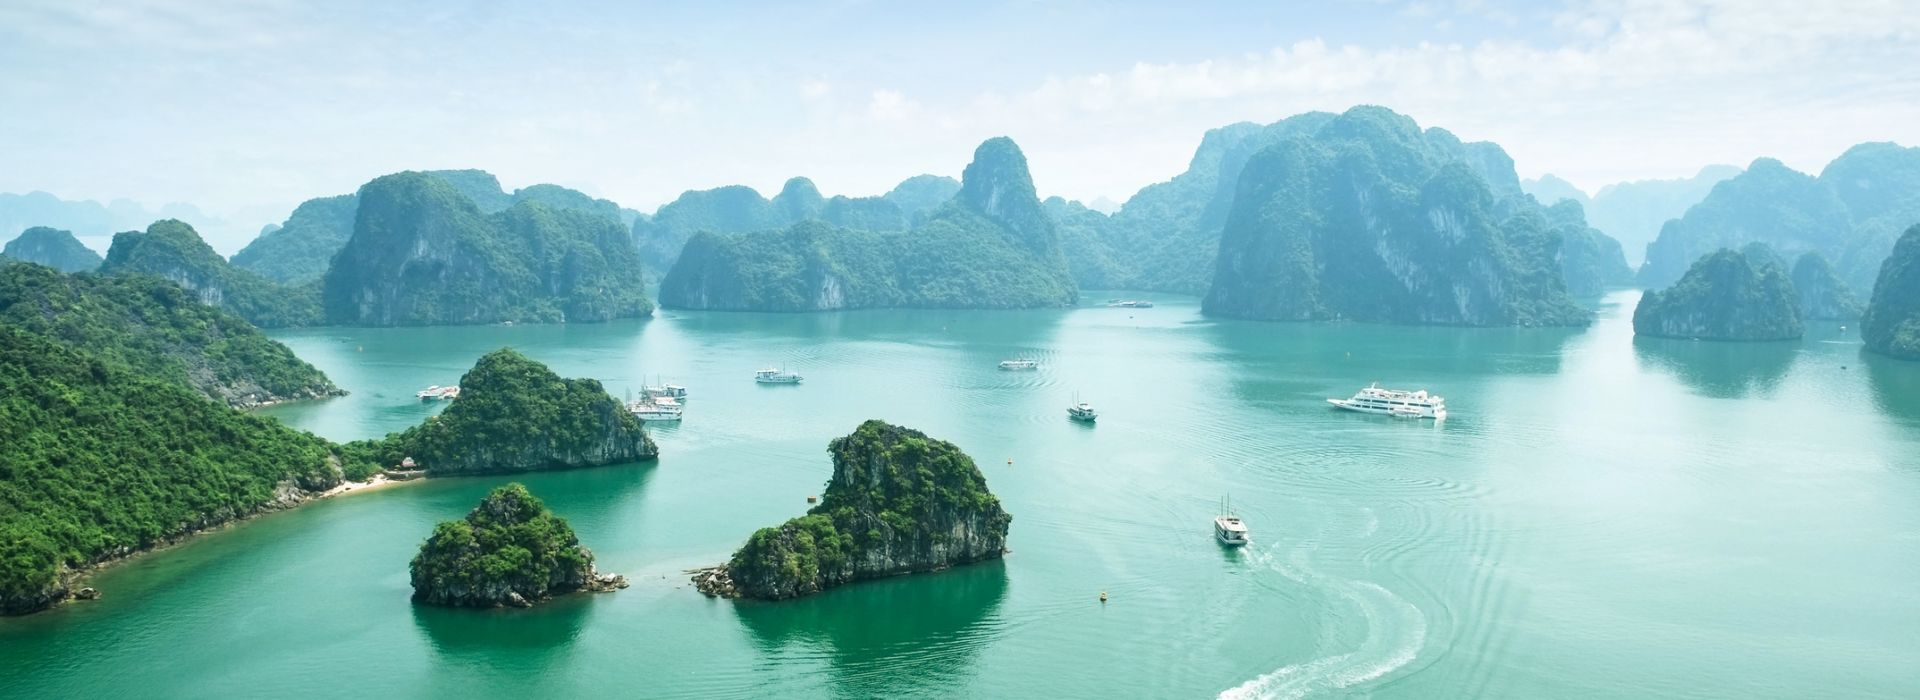 Boat tours, water sports and marine wildlife in Hanoi